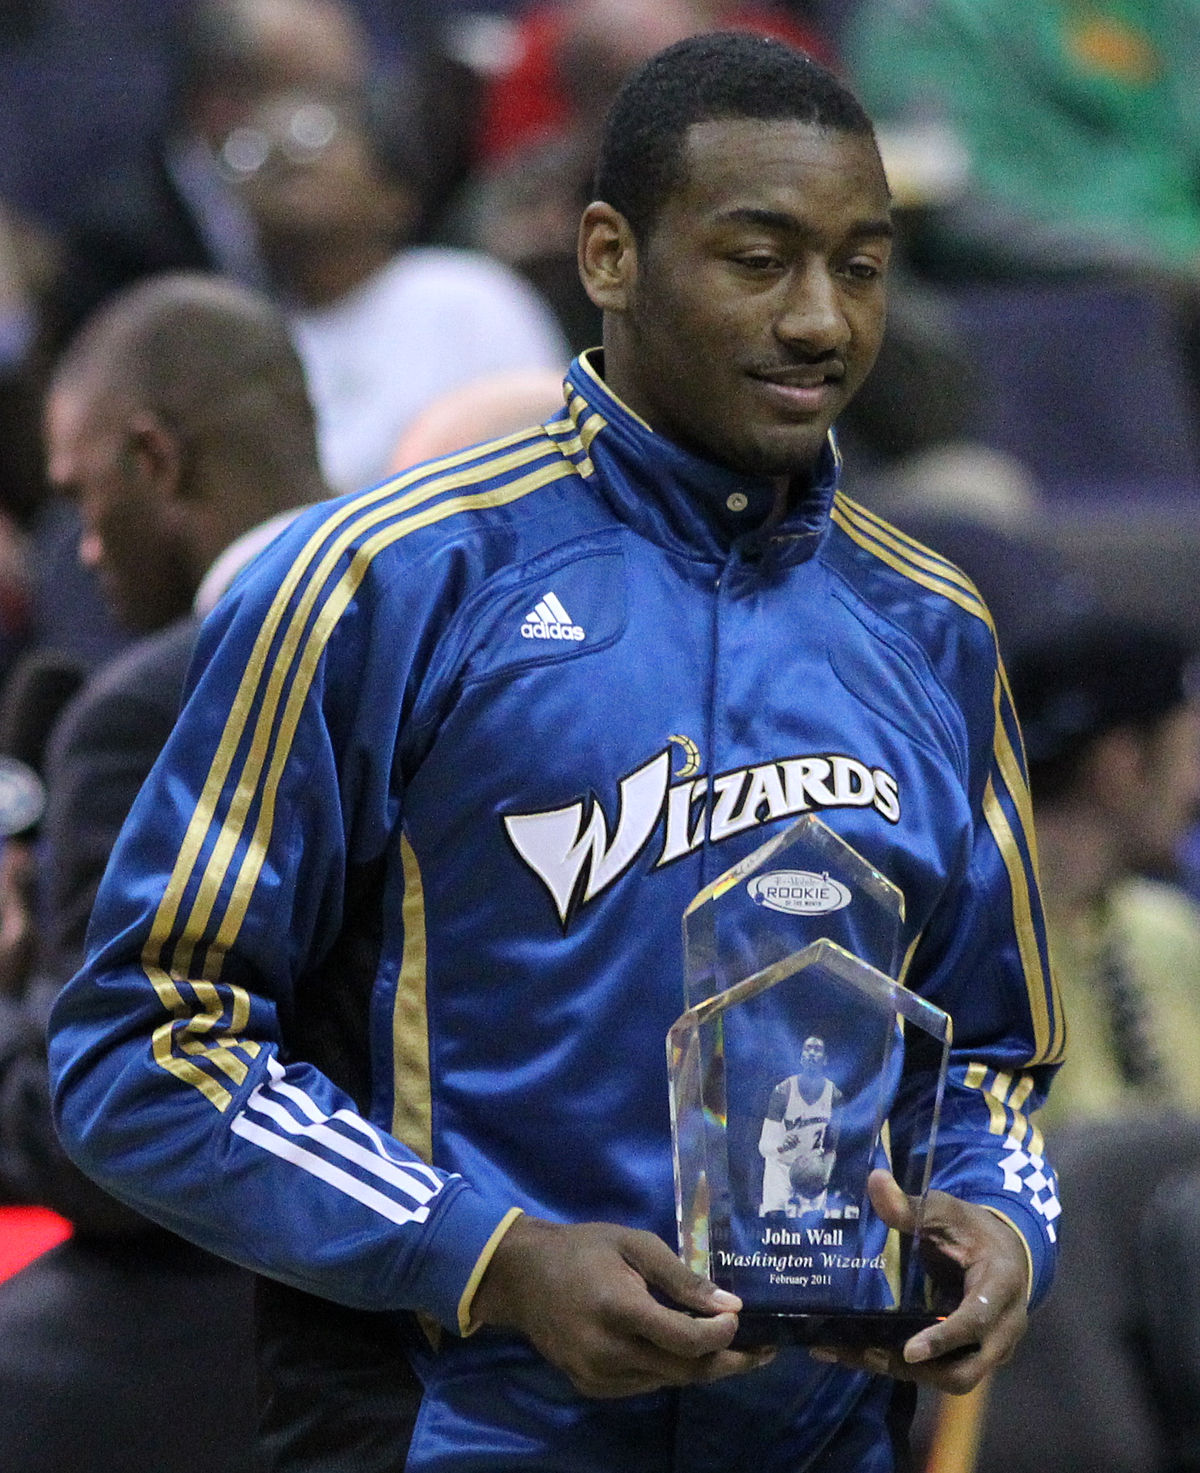 NBA Rookie of the Month Award